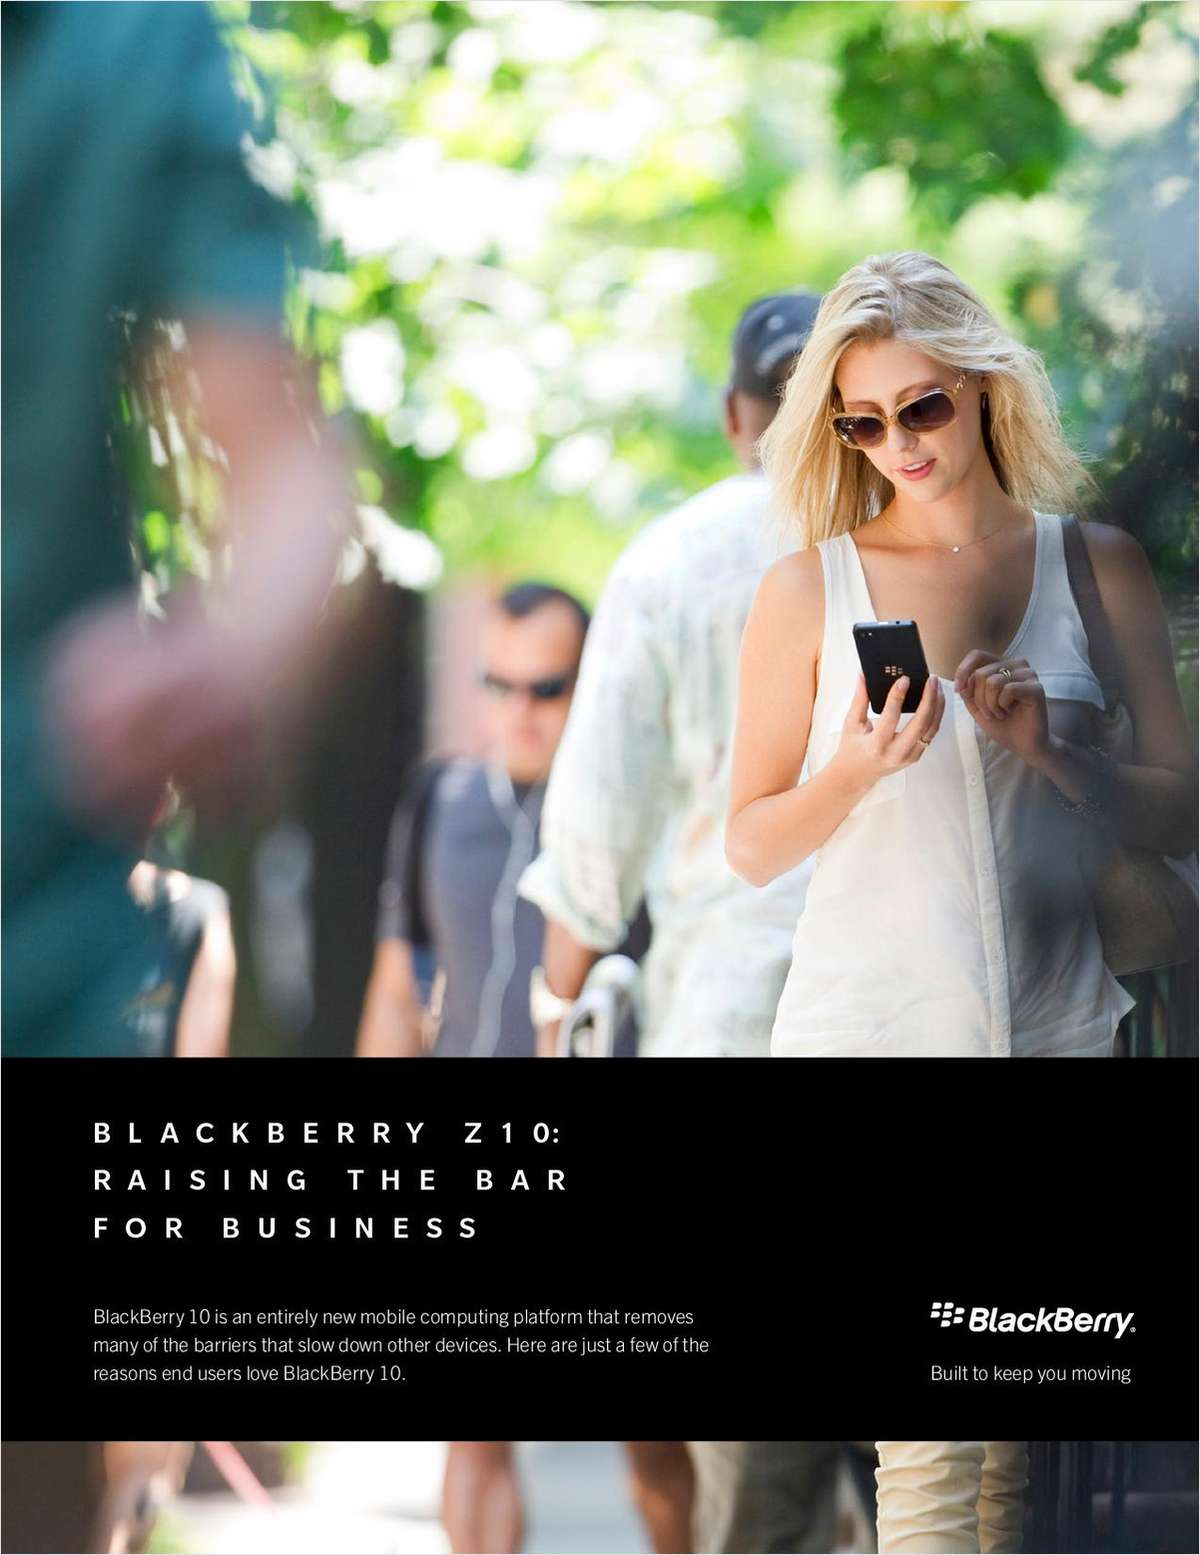 How BlackBerry Z10 Raises the Bar for Business